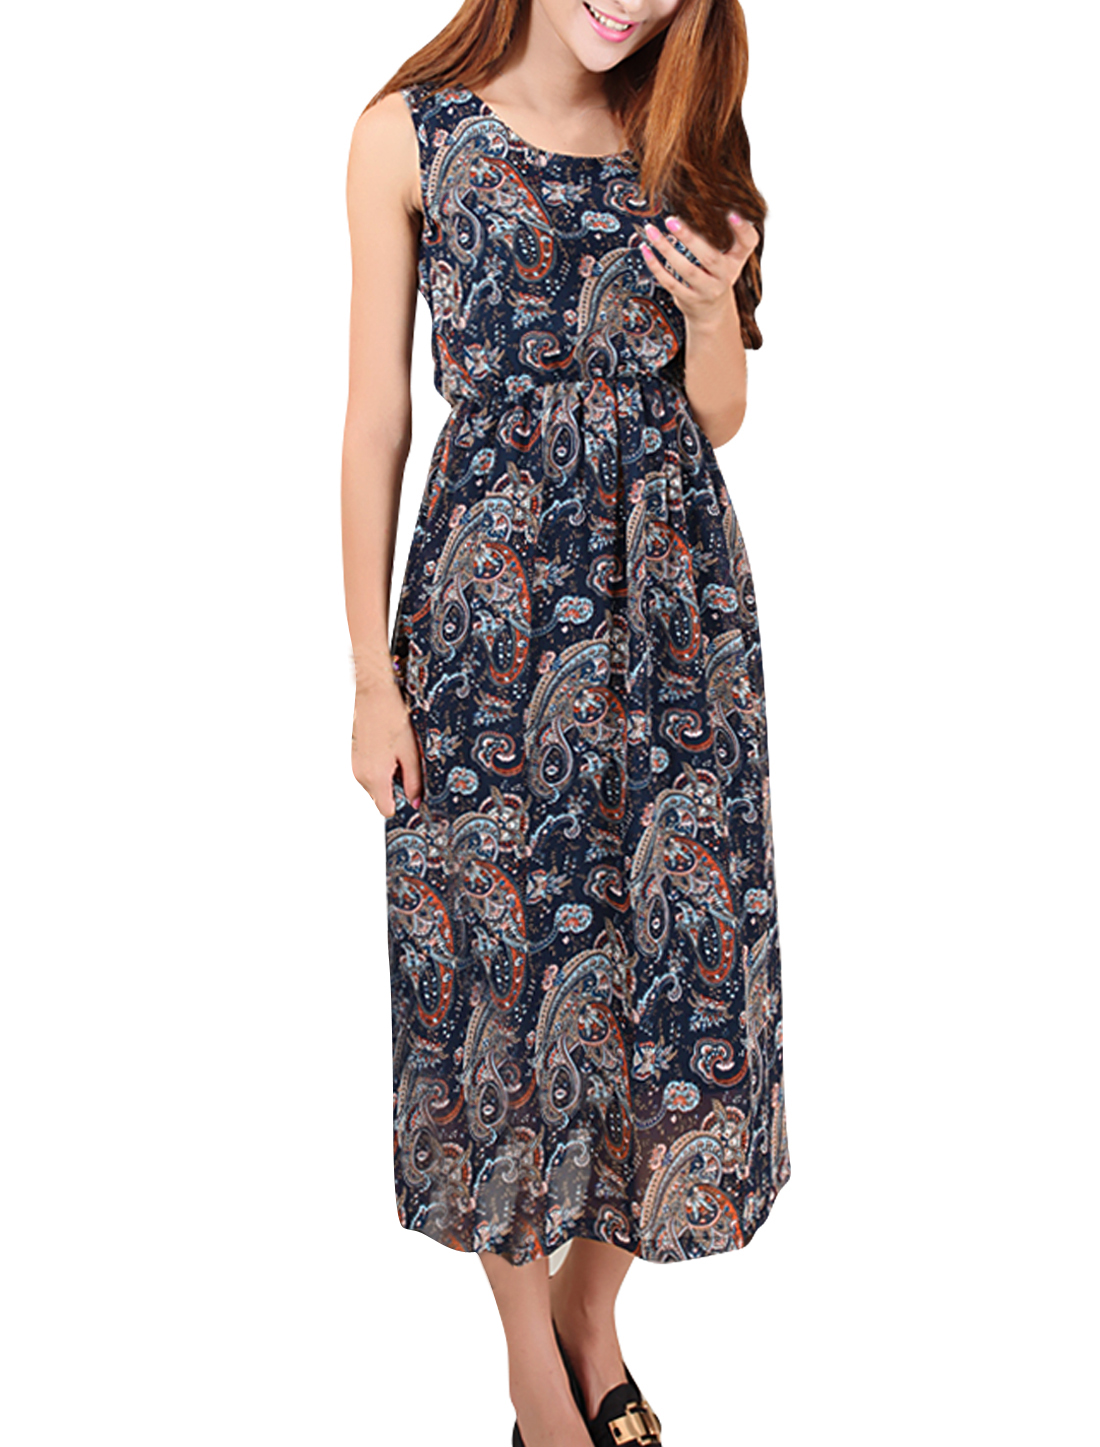 Women Stretchy Waist Paisley Pattern Lining Chiffon Dress Navy M